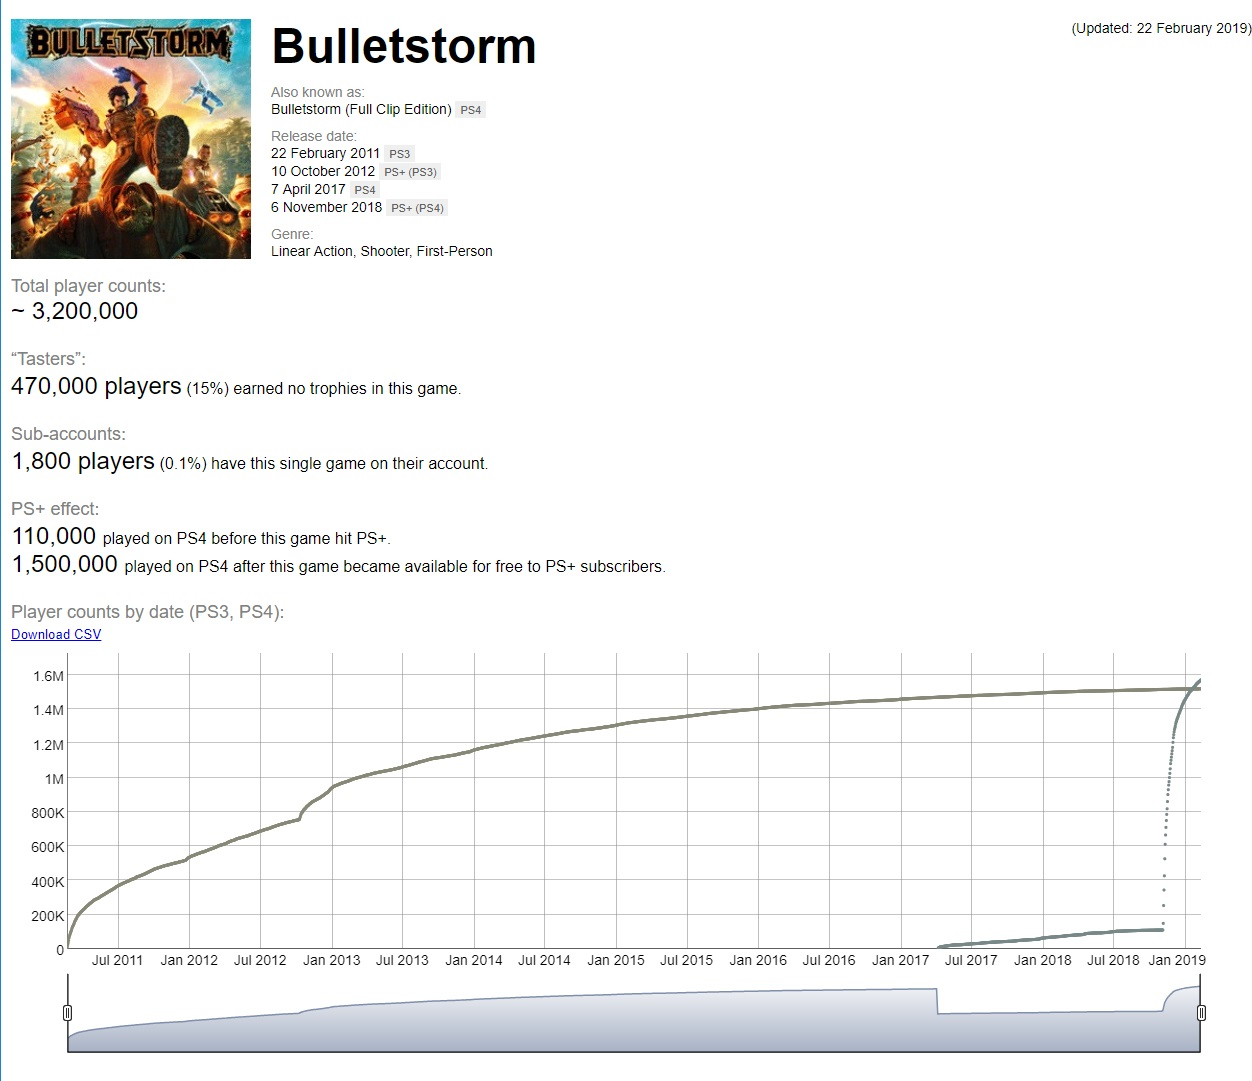 See if you can pick out the moment <em>Bulletstorm</em> got added to PlayStation Plus.